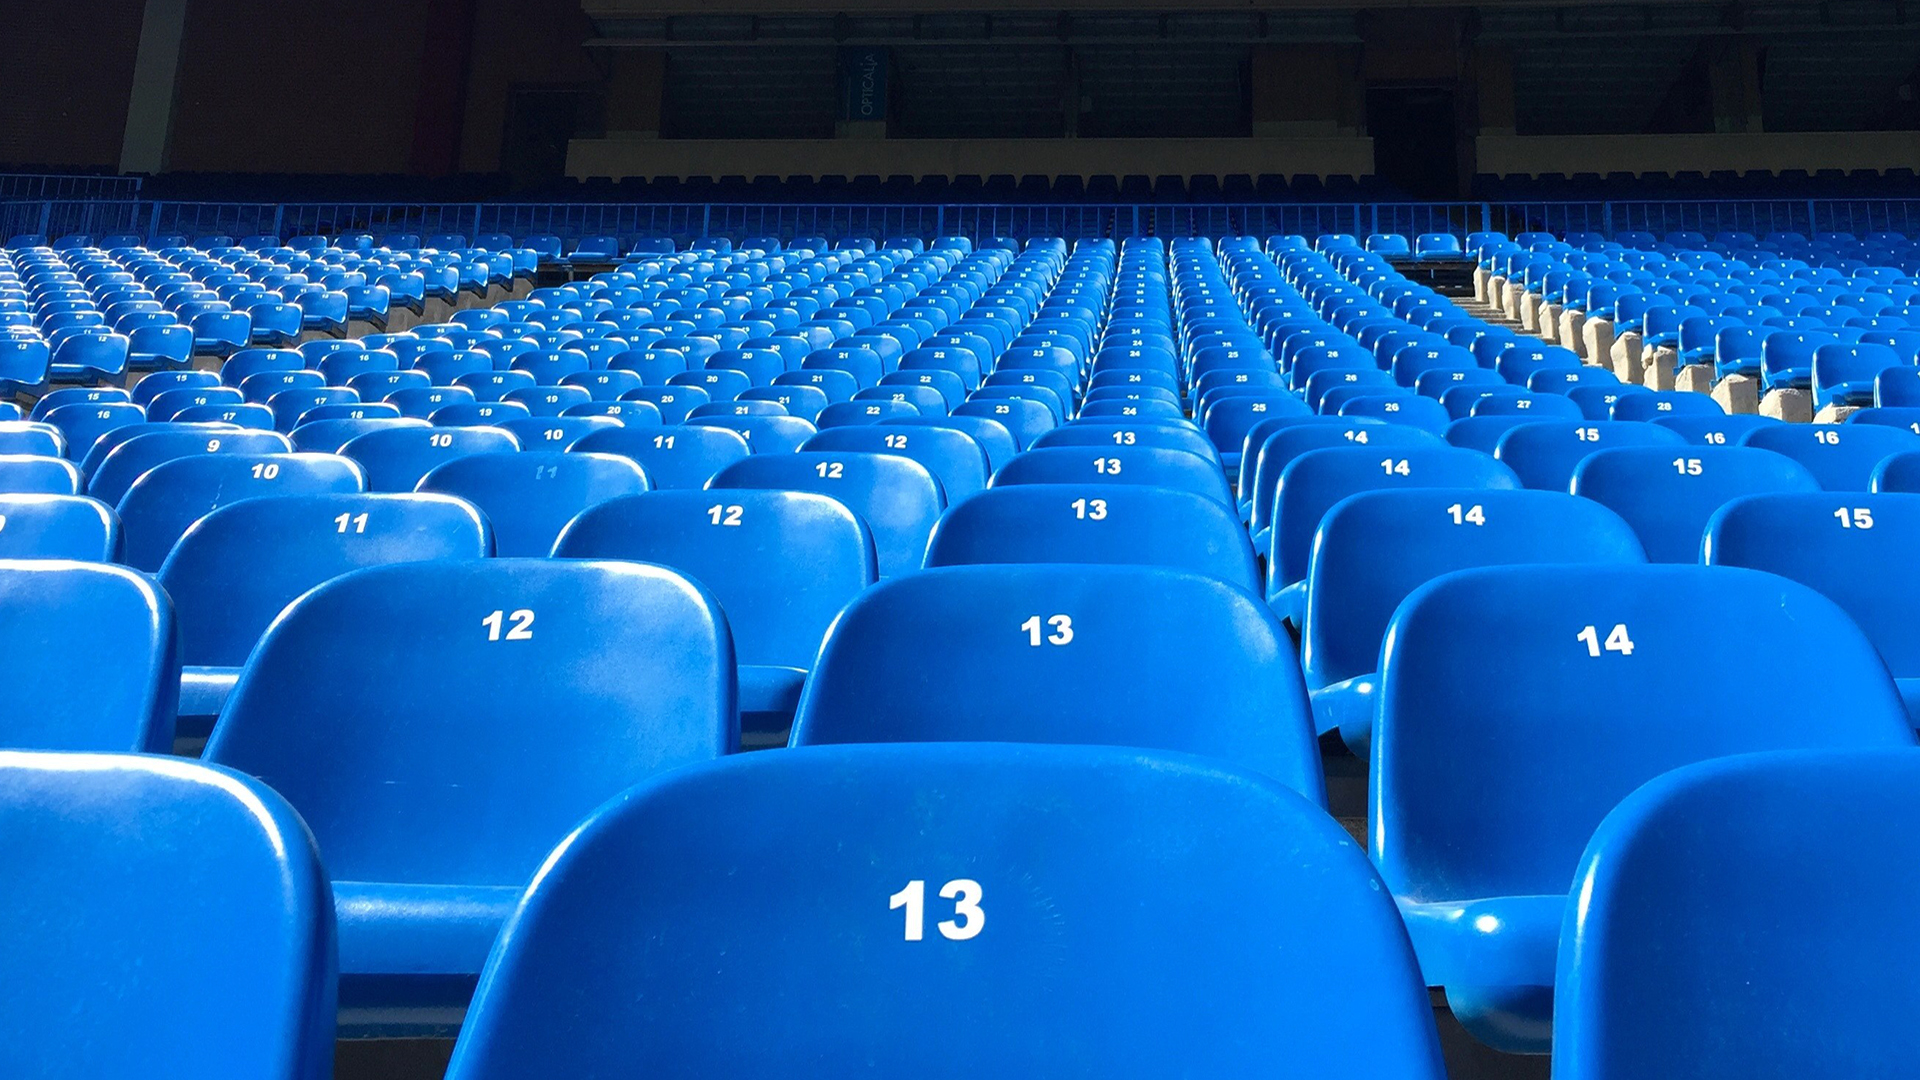 Blue seats in a stadium. Virtual background to use on Zoom, Microsoft Teams, Skype, Google Meet, WebEx or any other compatible app.